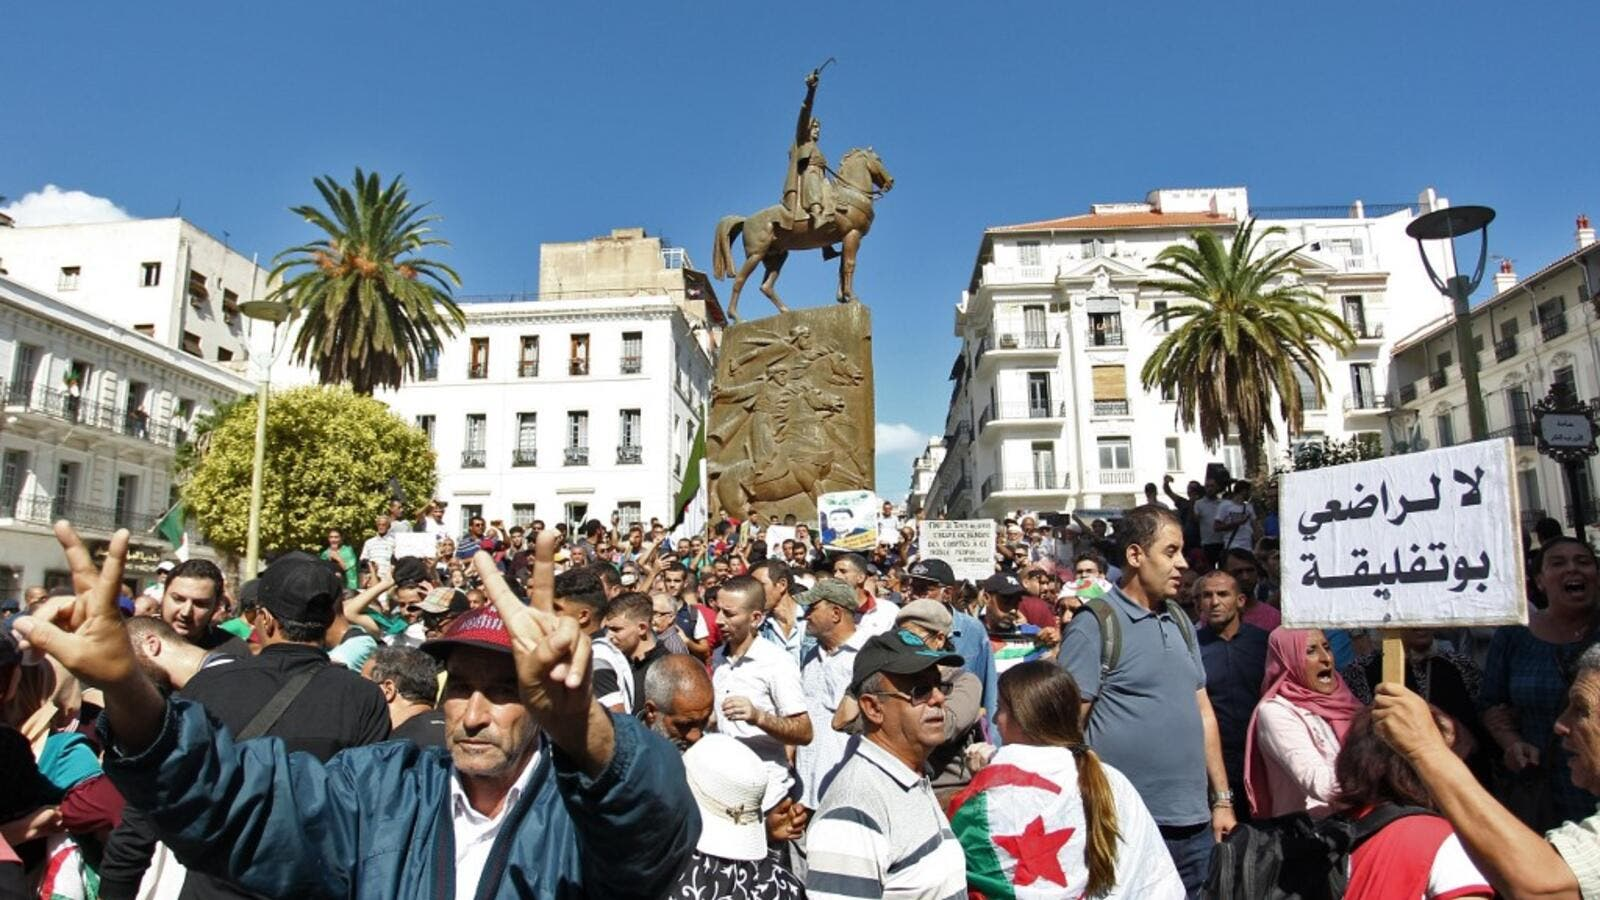 Demonstrators gathered in the capital, the epicentre of Algeria's protest movement that forced longtime president Abdelaziz Bouteflika to step down in April. (STRINGER / AFP)